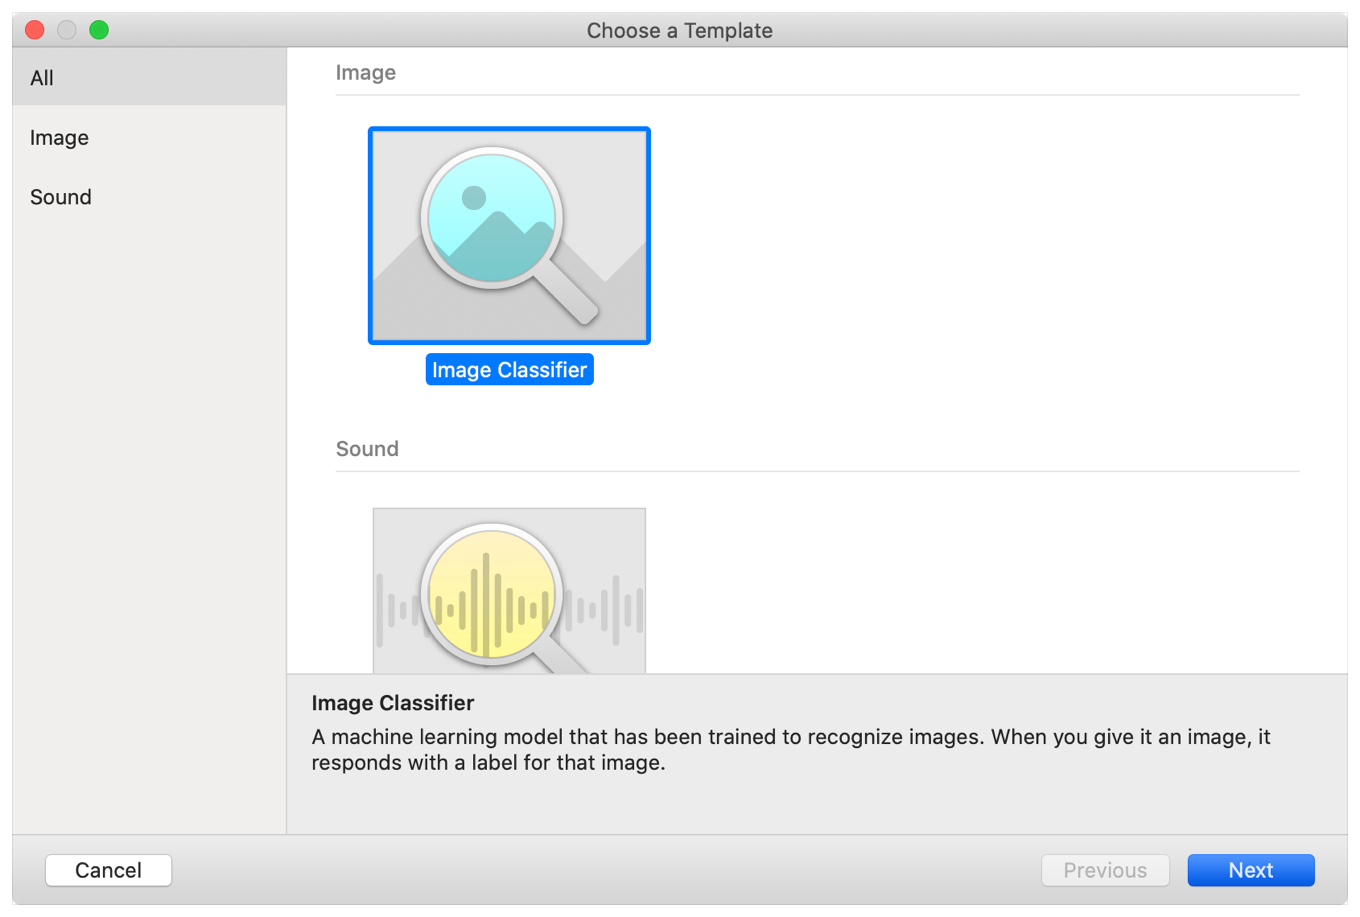 Screenshot of the Create ML project templates, with options for an Image Classifier, and a Sound Classifier.